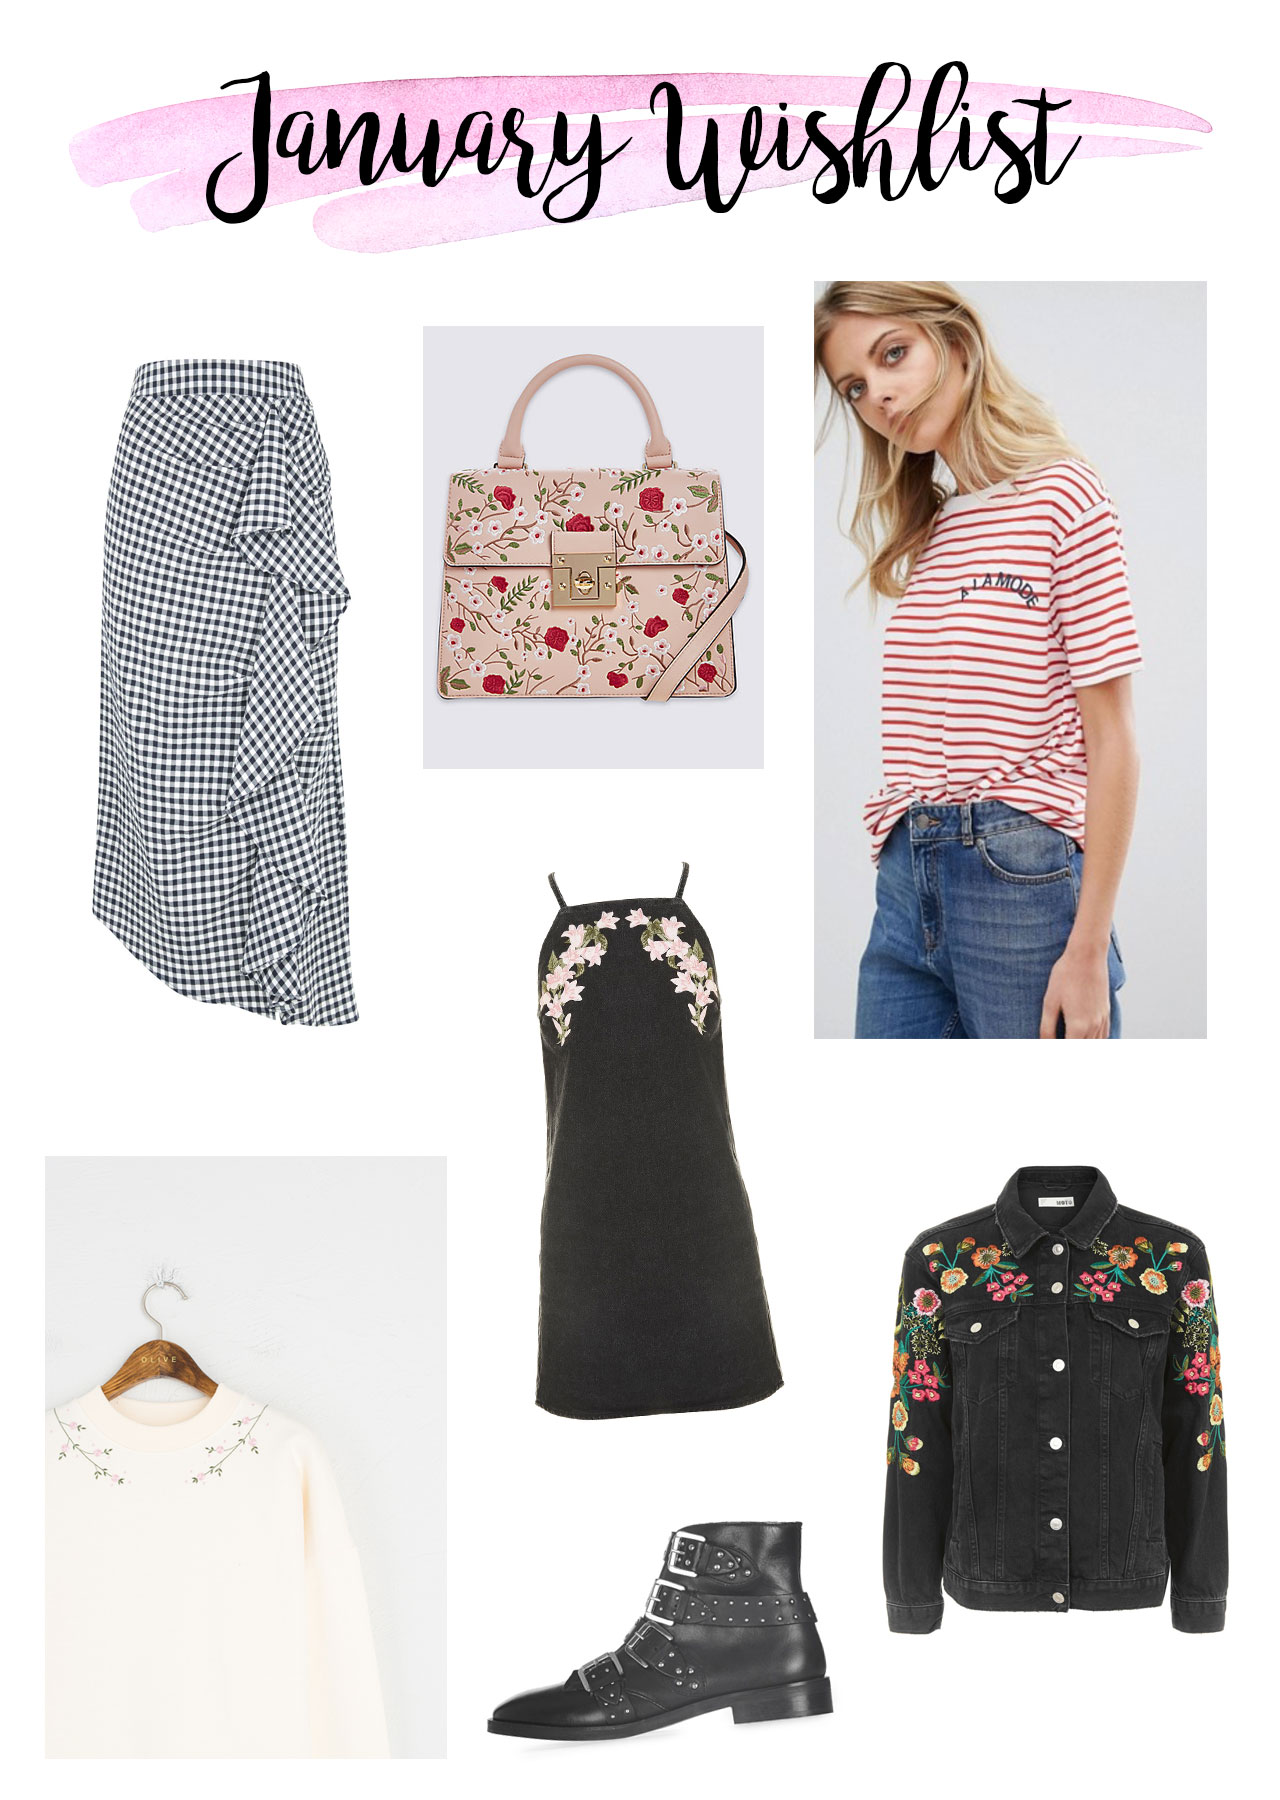 january wishlist, fashion, style, shopping